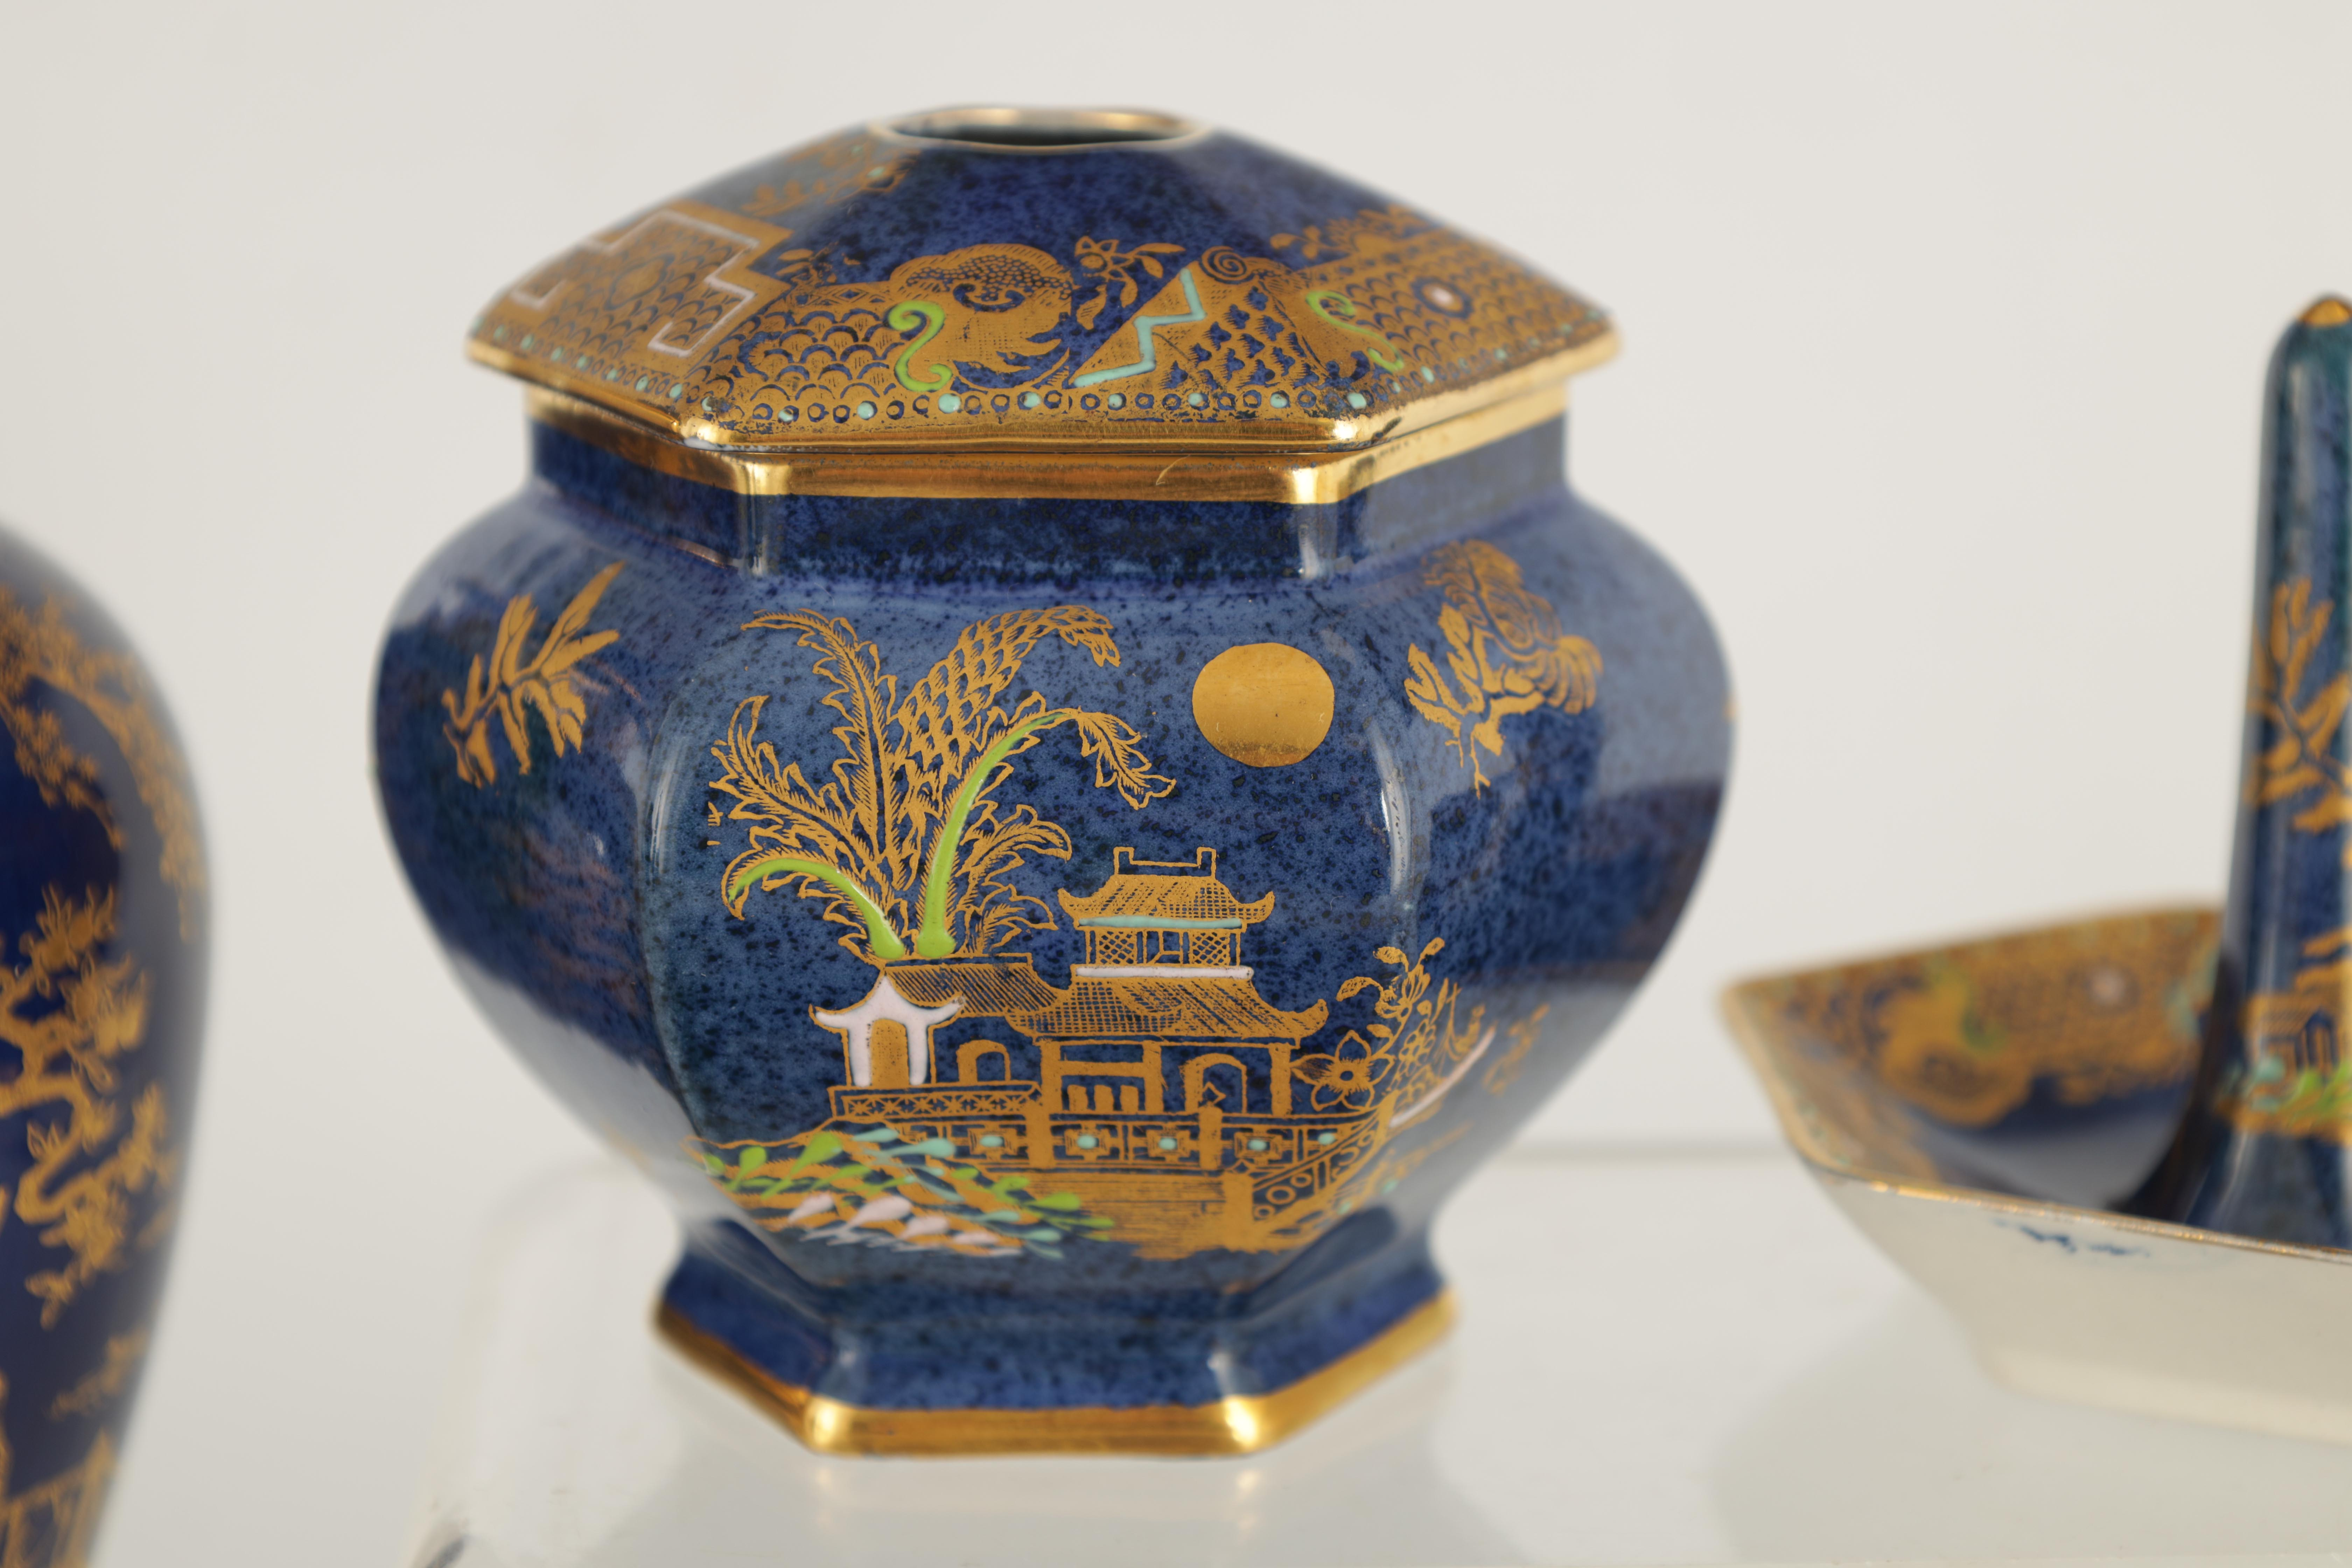 A CARLTON WARE FIVE PIECE DRESSING TABLE SET decorated in an oriental gilt pattern with pagodas - Image 6 of 18